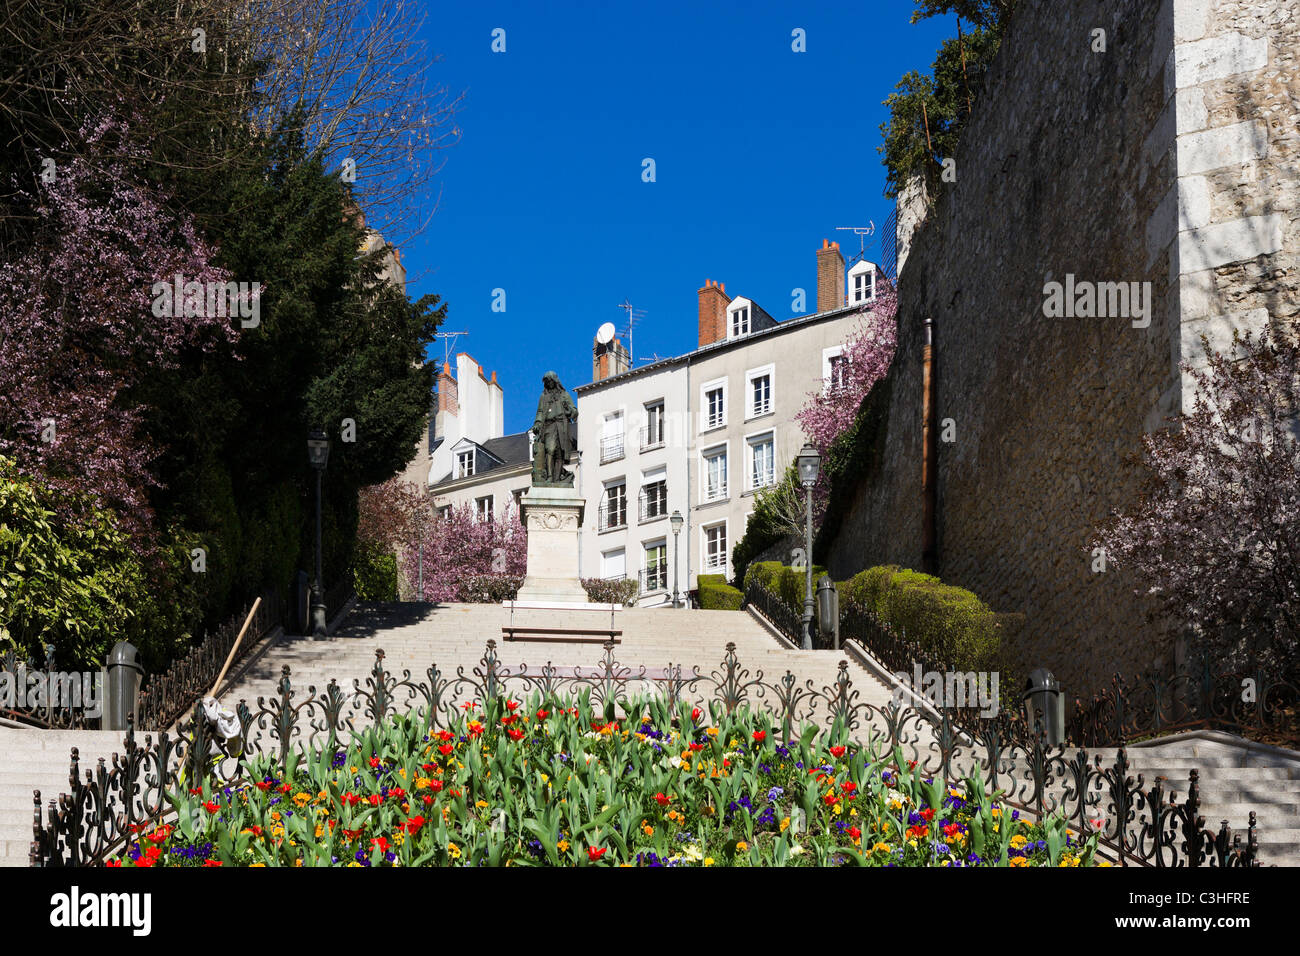 Centre of the old town, Blois, Loire Valley, Touraine, France - Stock Image